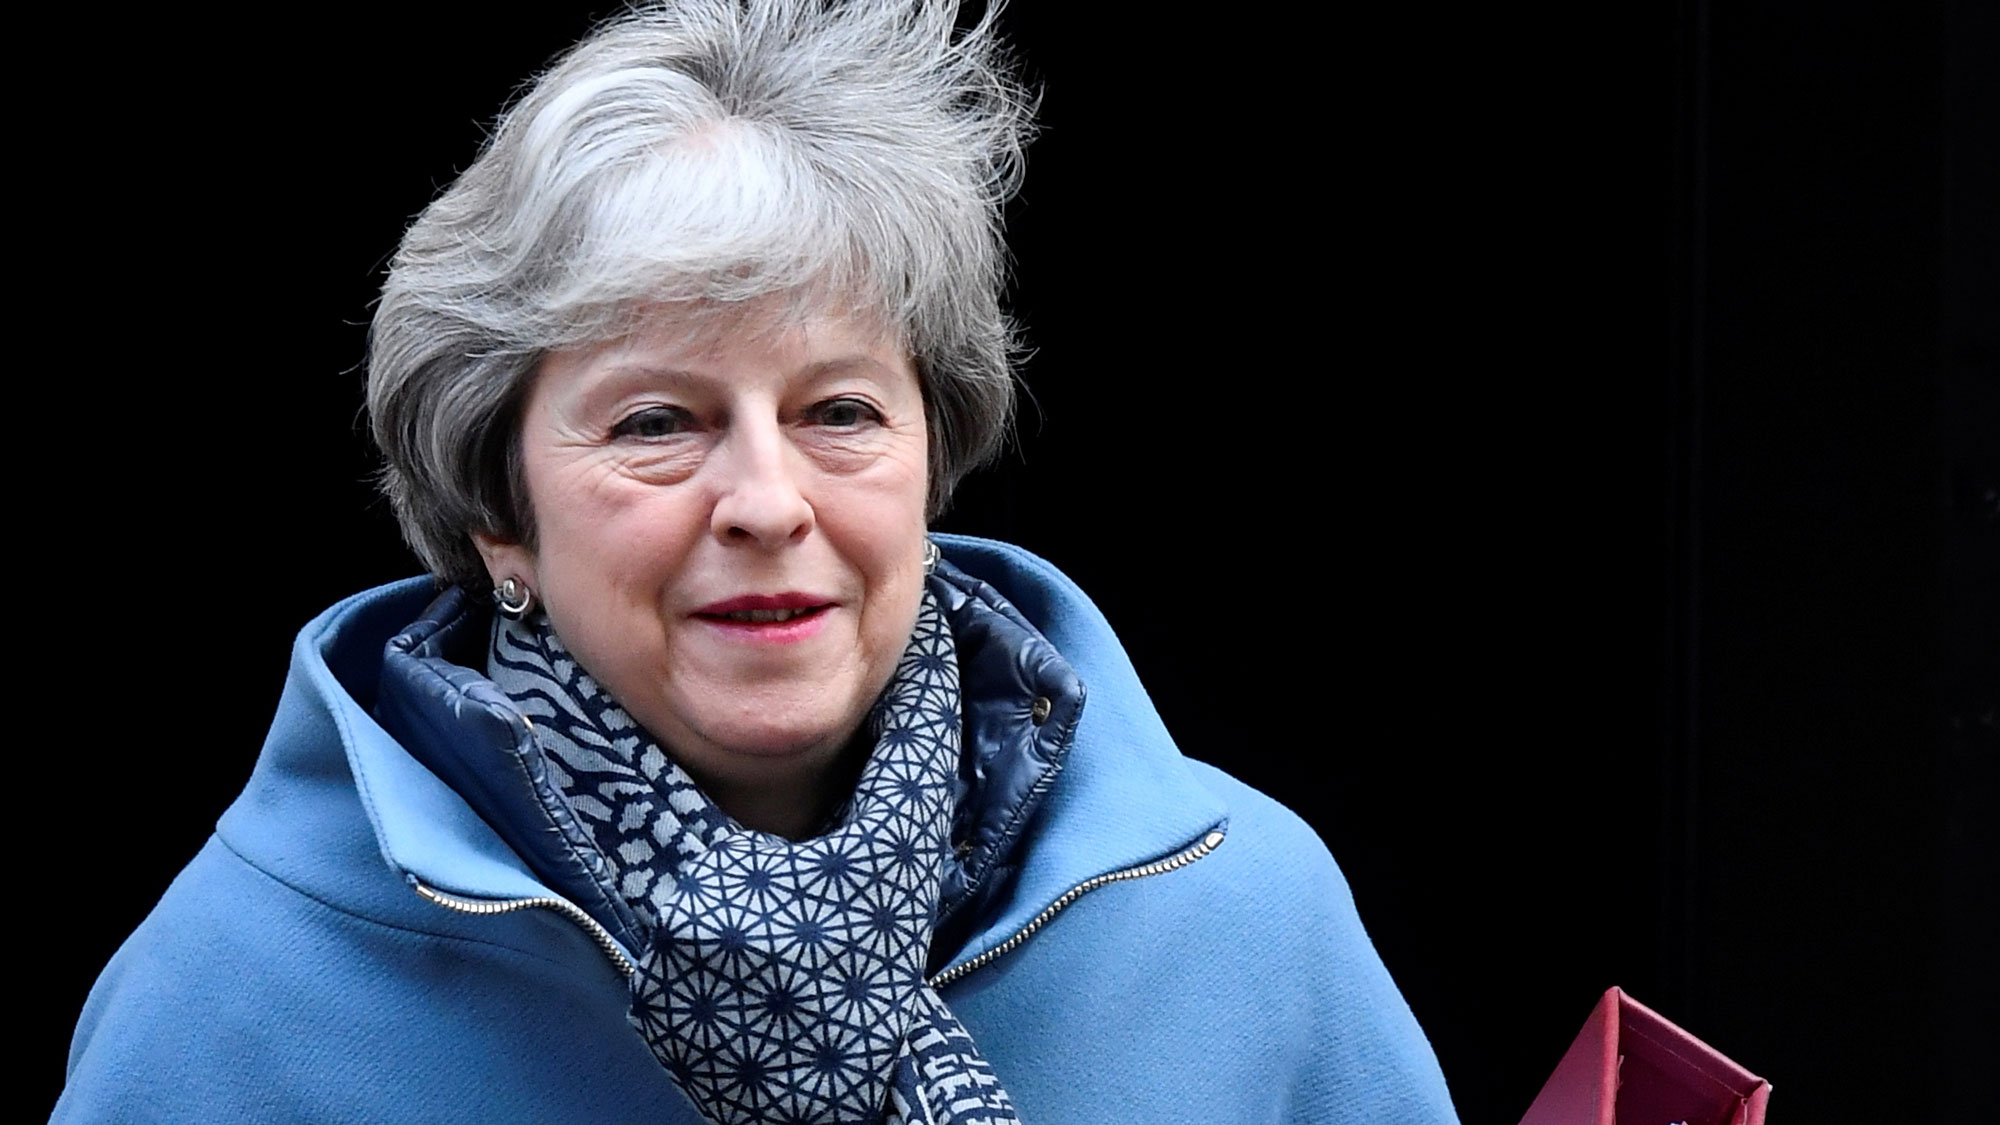 Britain's Prime Minister Theresa May shown leaving Downing Street wearing a blue jacket and scarf while carrying a red binder.